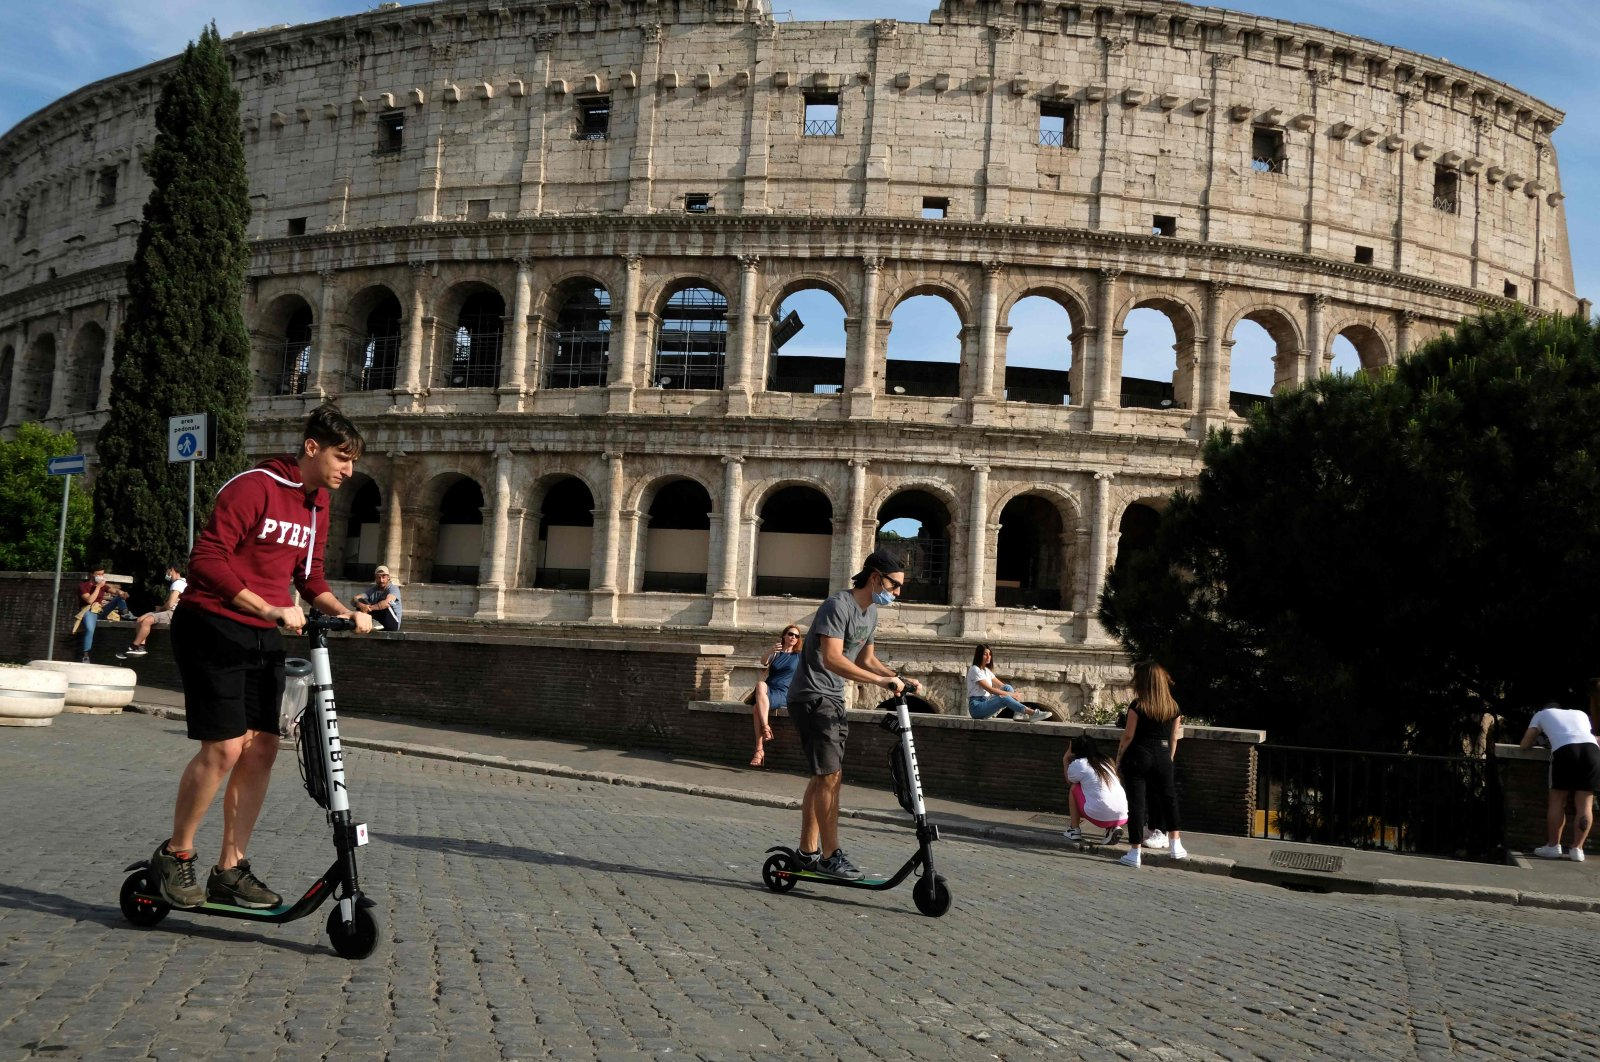 People ride electric scooters, past the Colosseum monument, Rome, May 28, 2020. (AFP Photo)